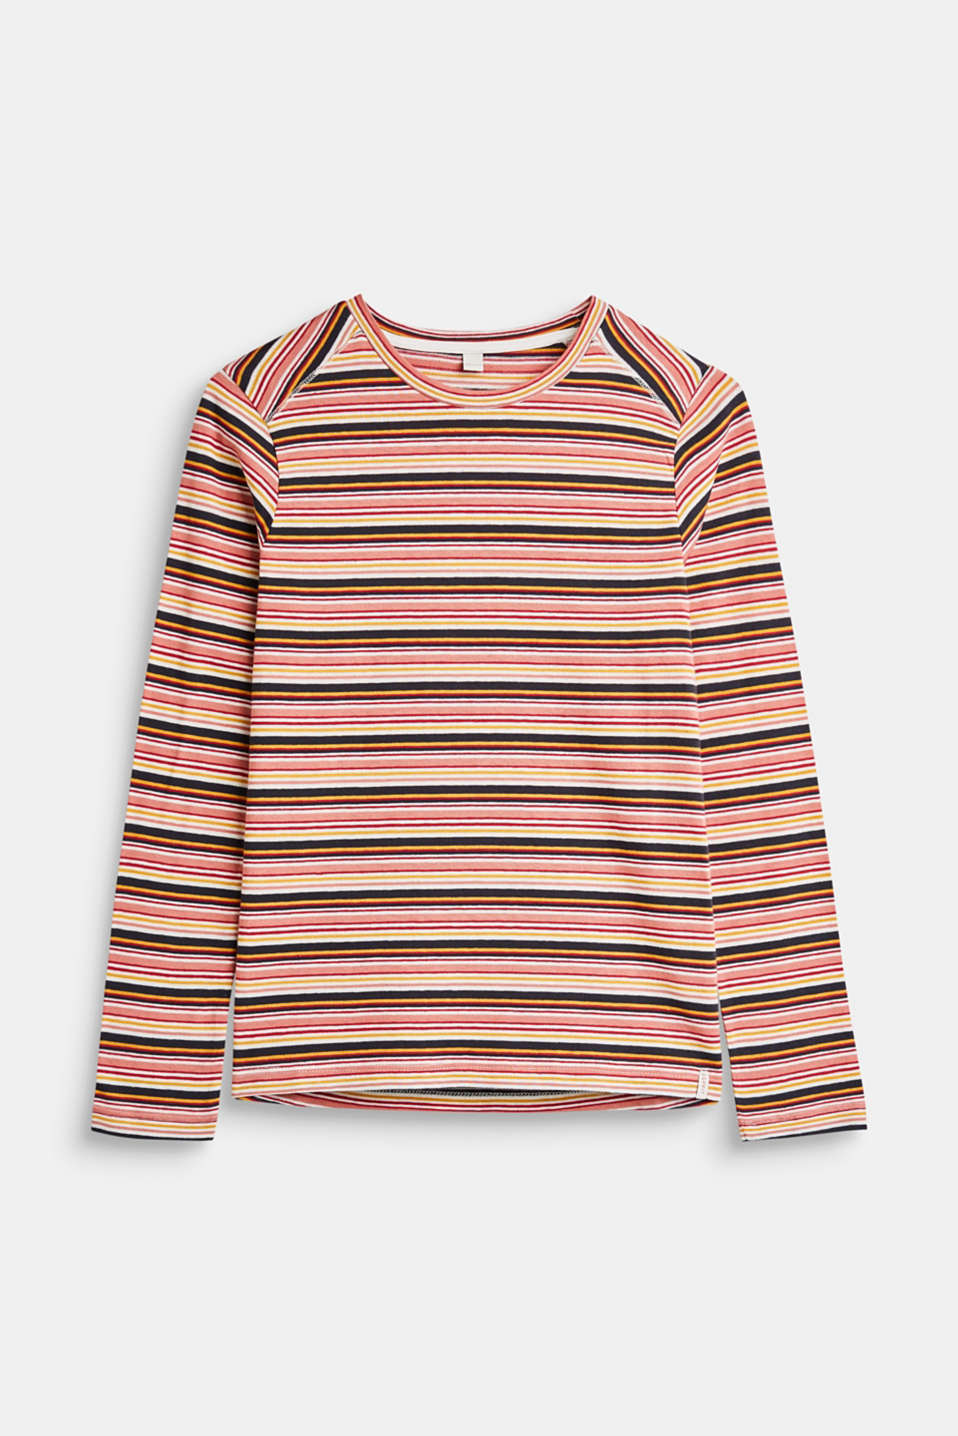 Esprit - Long sleeve top with multi-coloured stripes, 100% cotton